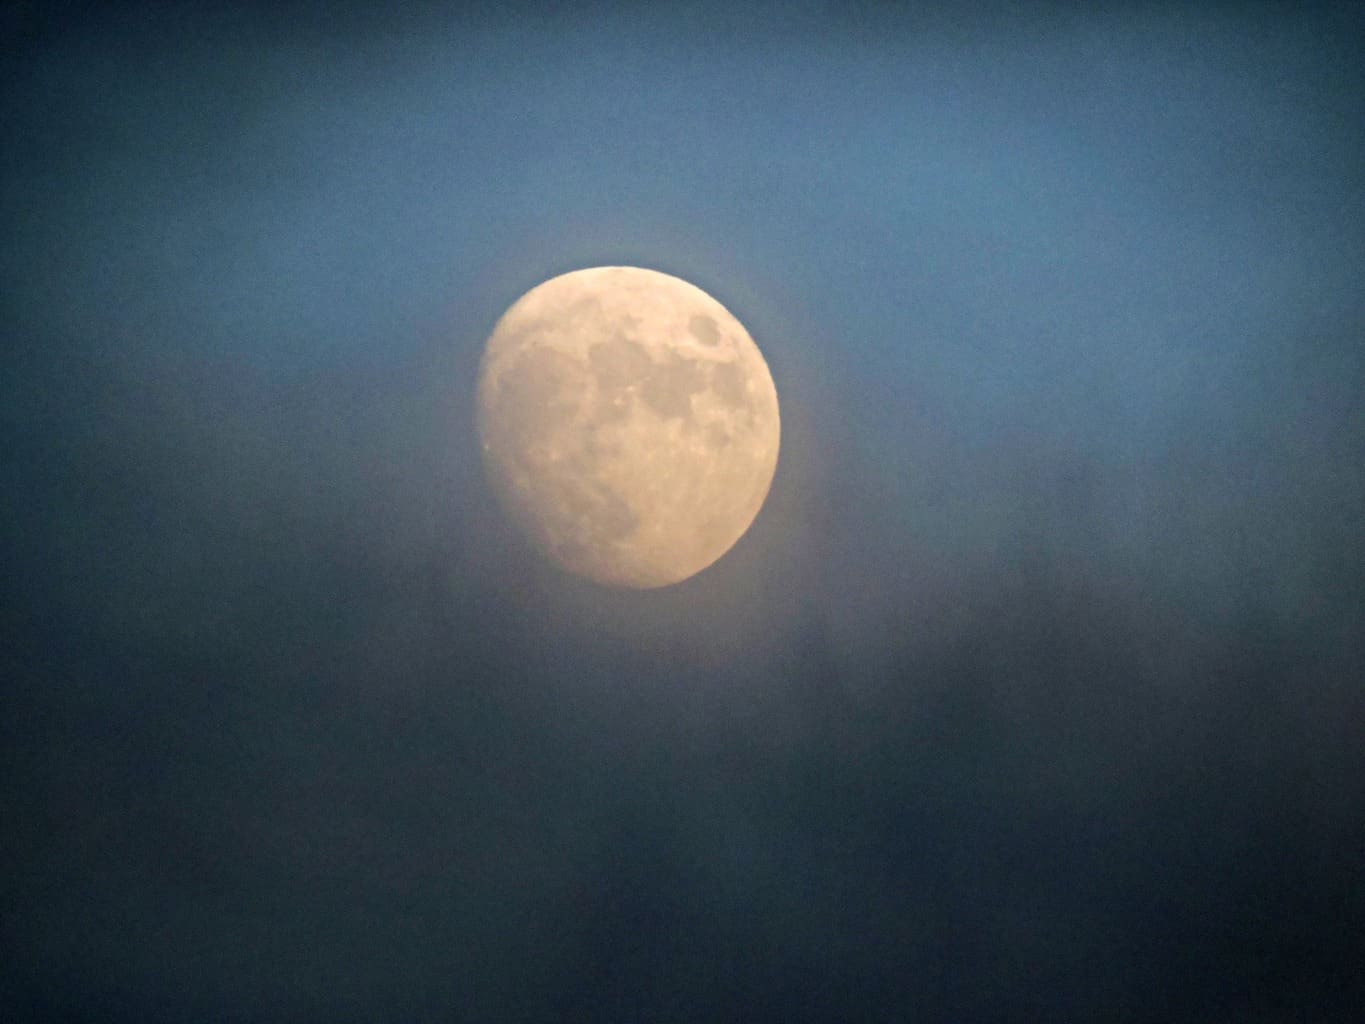 Took this about 10 minutes ago. Clouds moving by just enough to get a nice shot of the moon. Richland, Wa